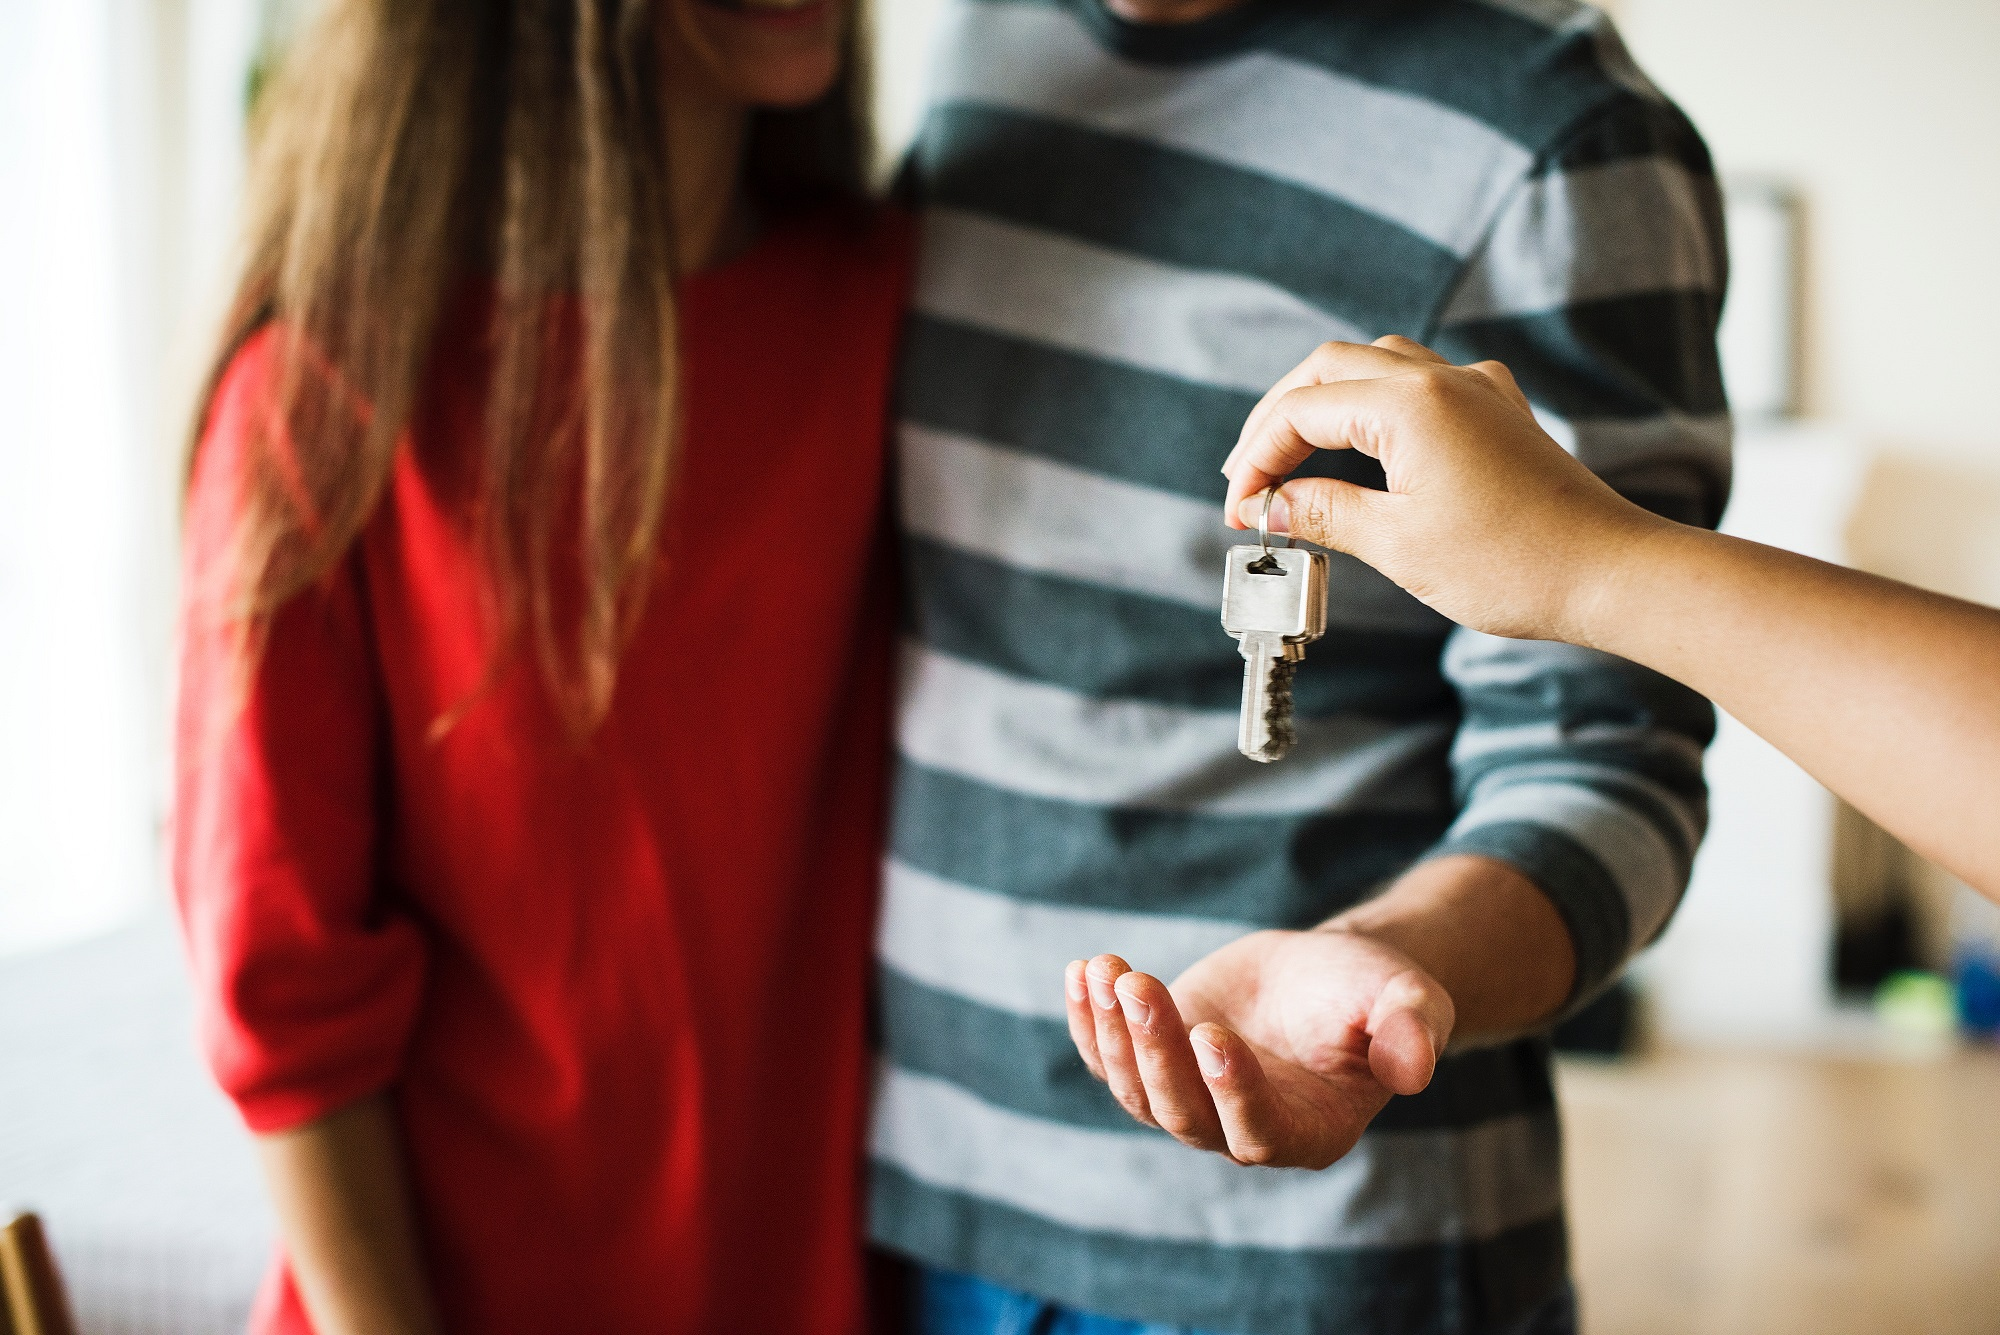 Shared ownership: The pros and cons explained